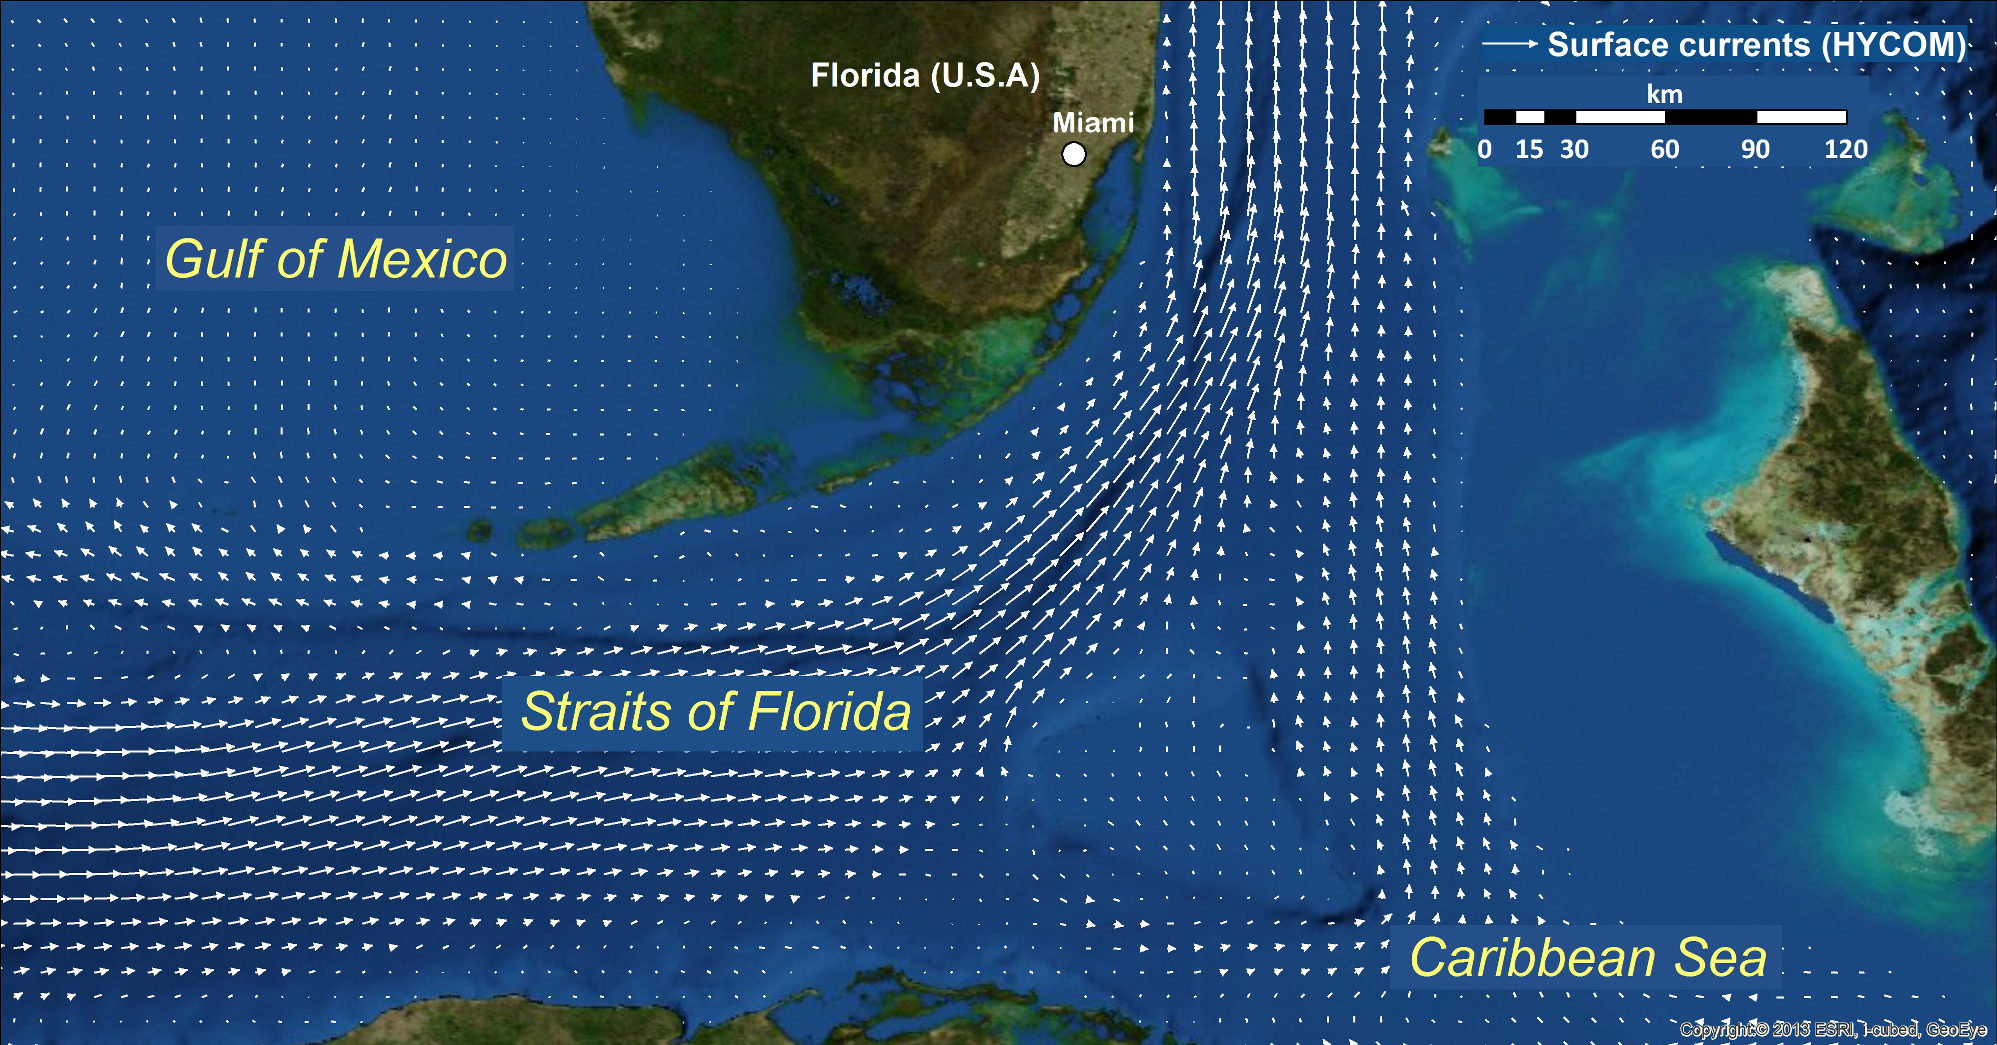 straights of florida map Florida Straits Google Search Florida Gulf Of Mexico